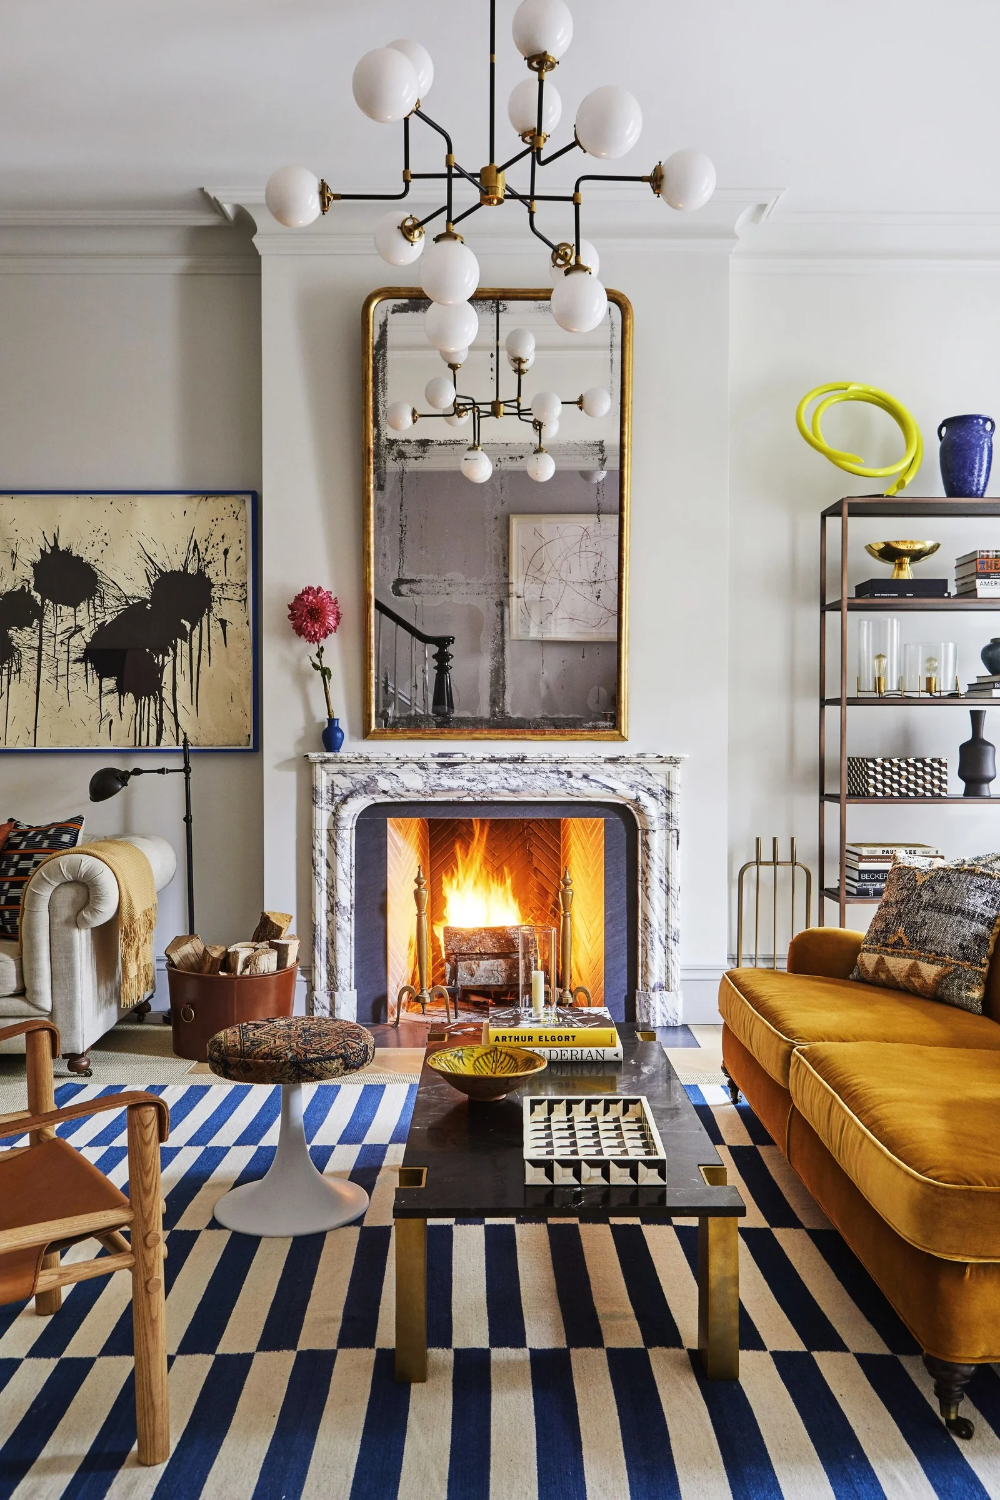 Introducing the 2020 AD100   Architectural digest, Decor ...